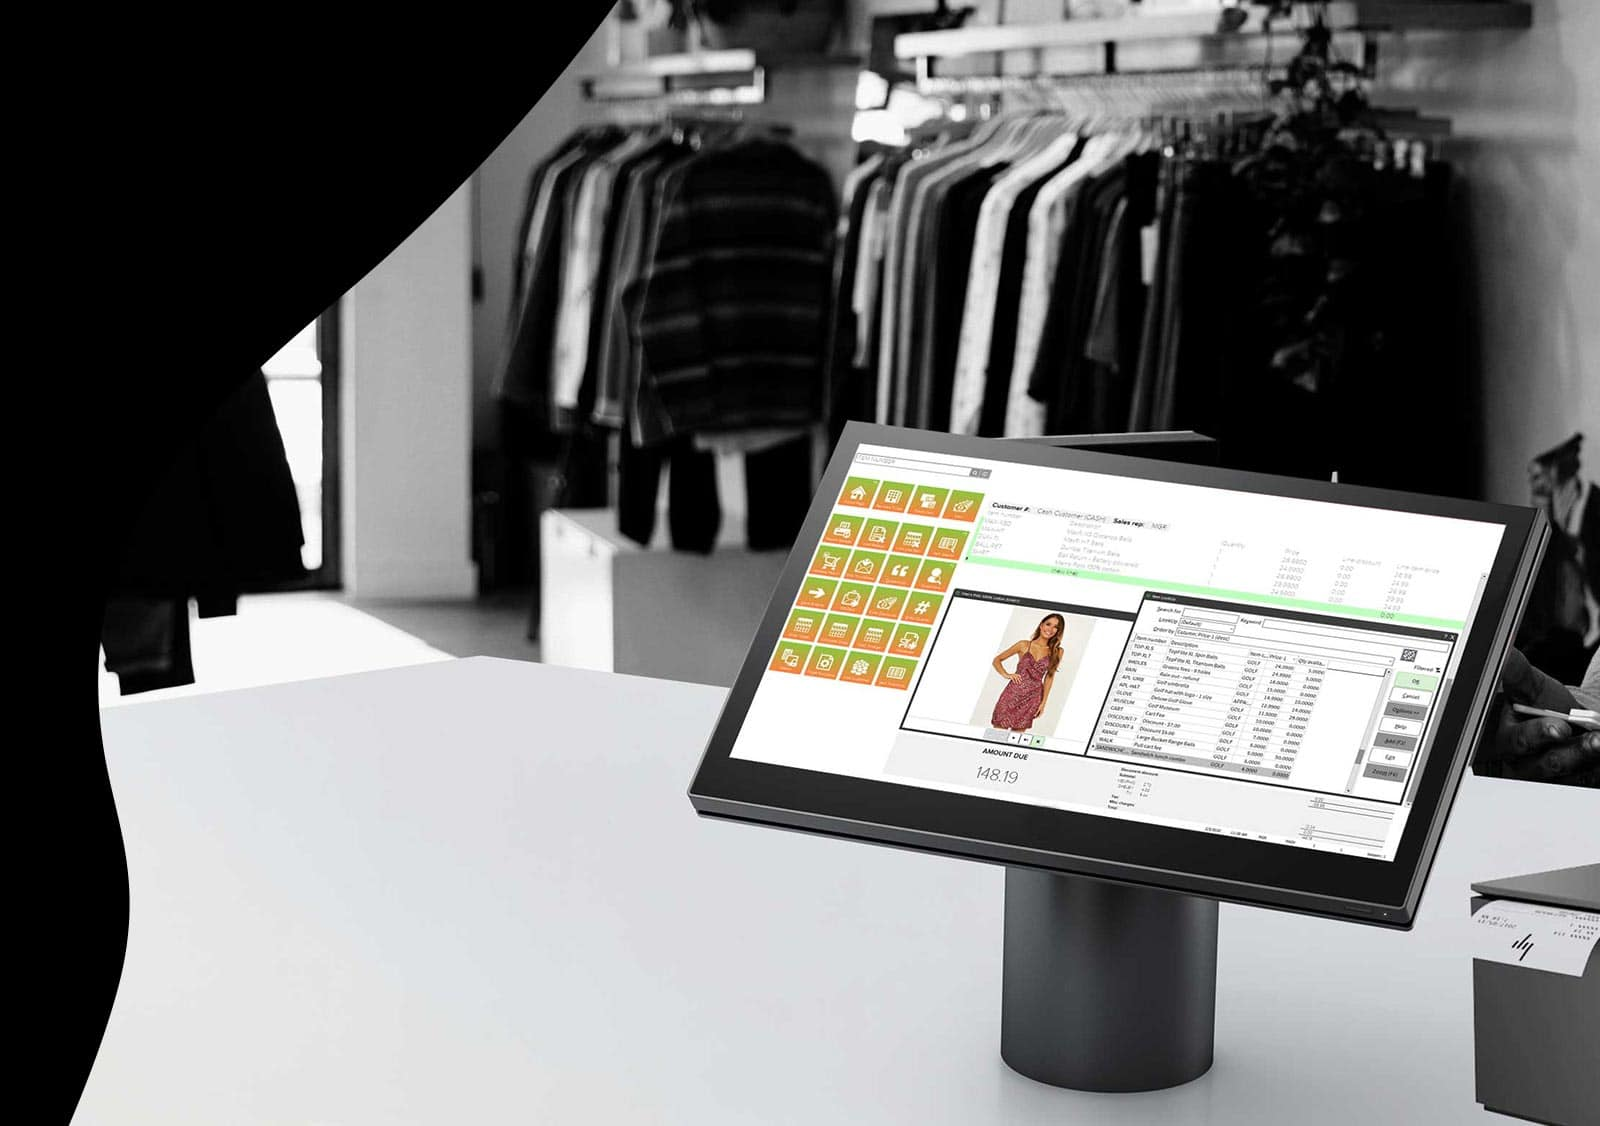 ncr-counterpoint-pos-system-features